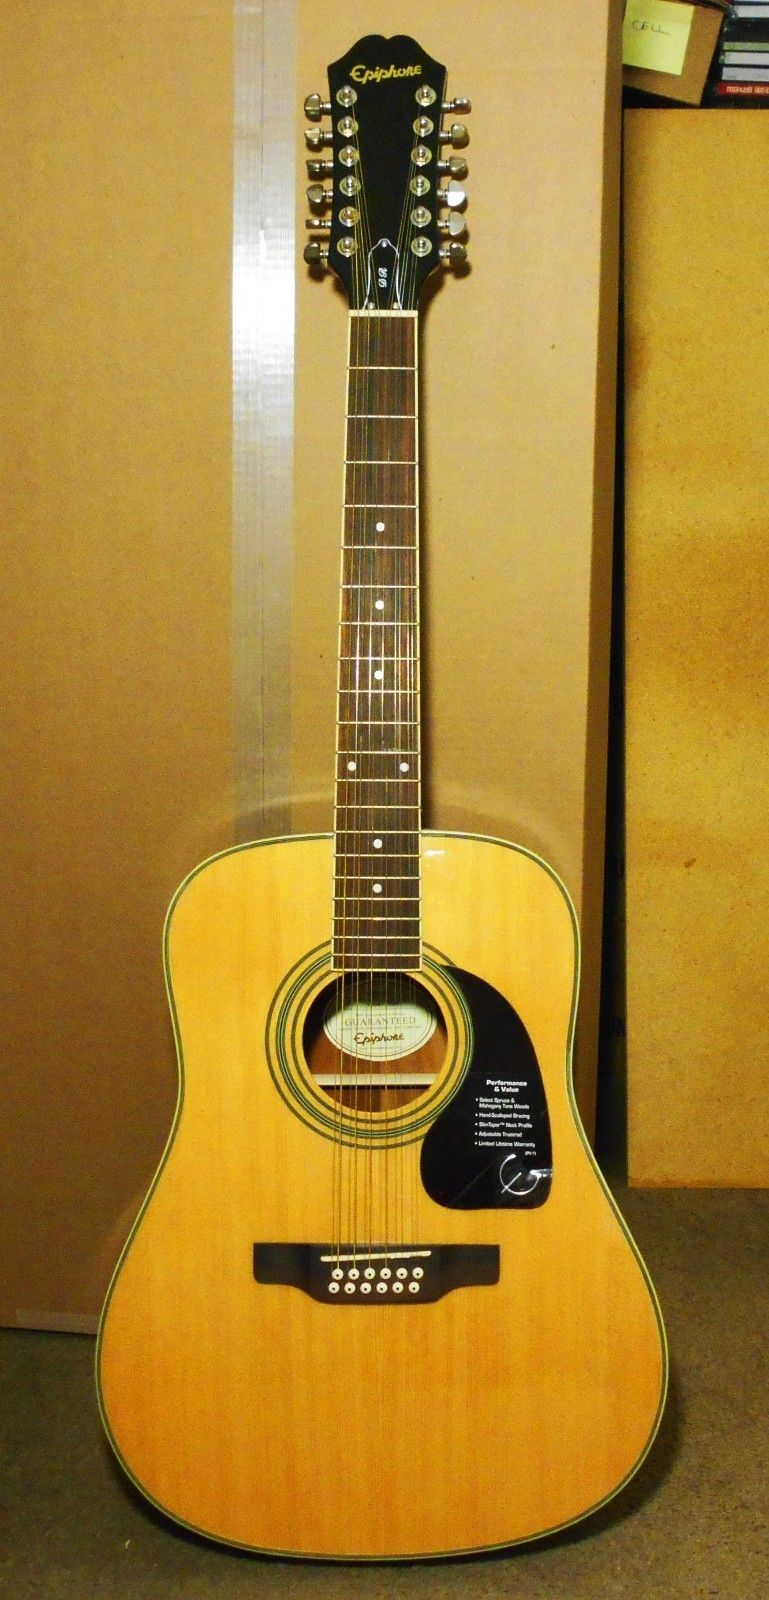 epiphone 12 string acoustic guitar dr 212 acoustic guitars 12 string acoustic guitar. Black Bedroom Furniture Sets. Home Design Ideas